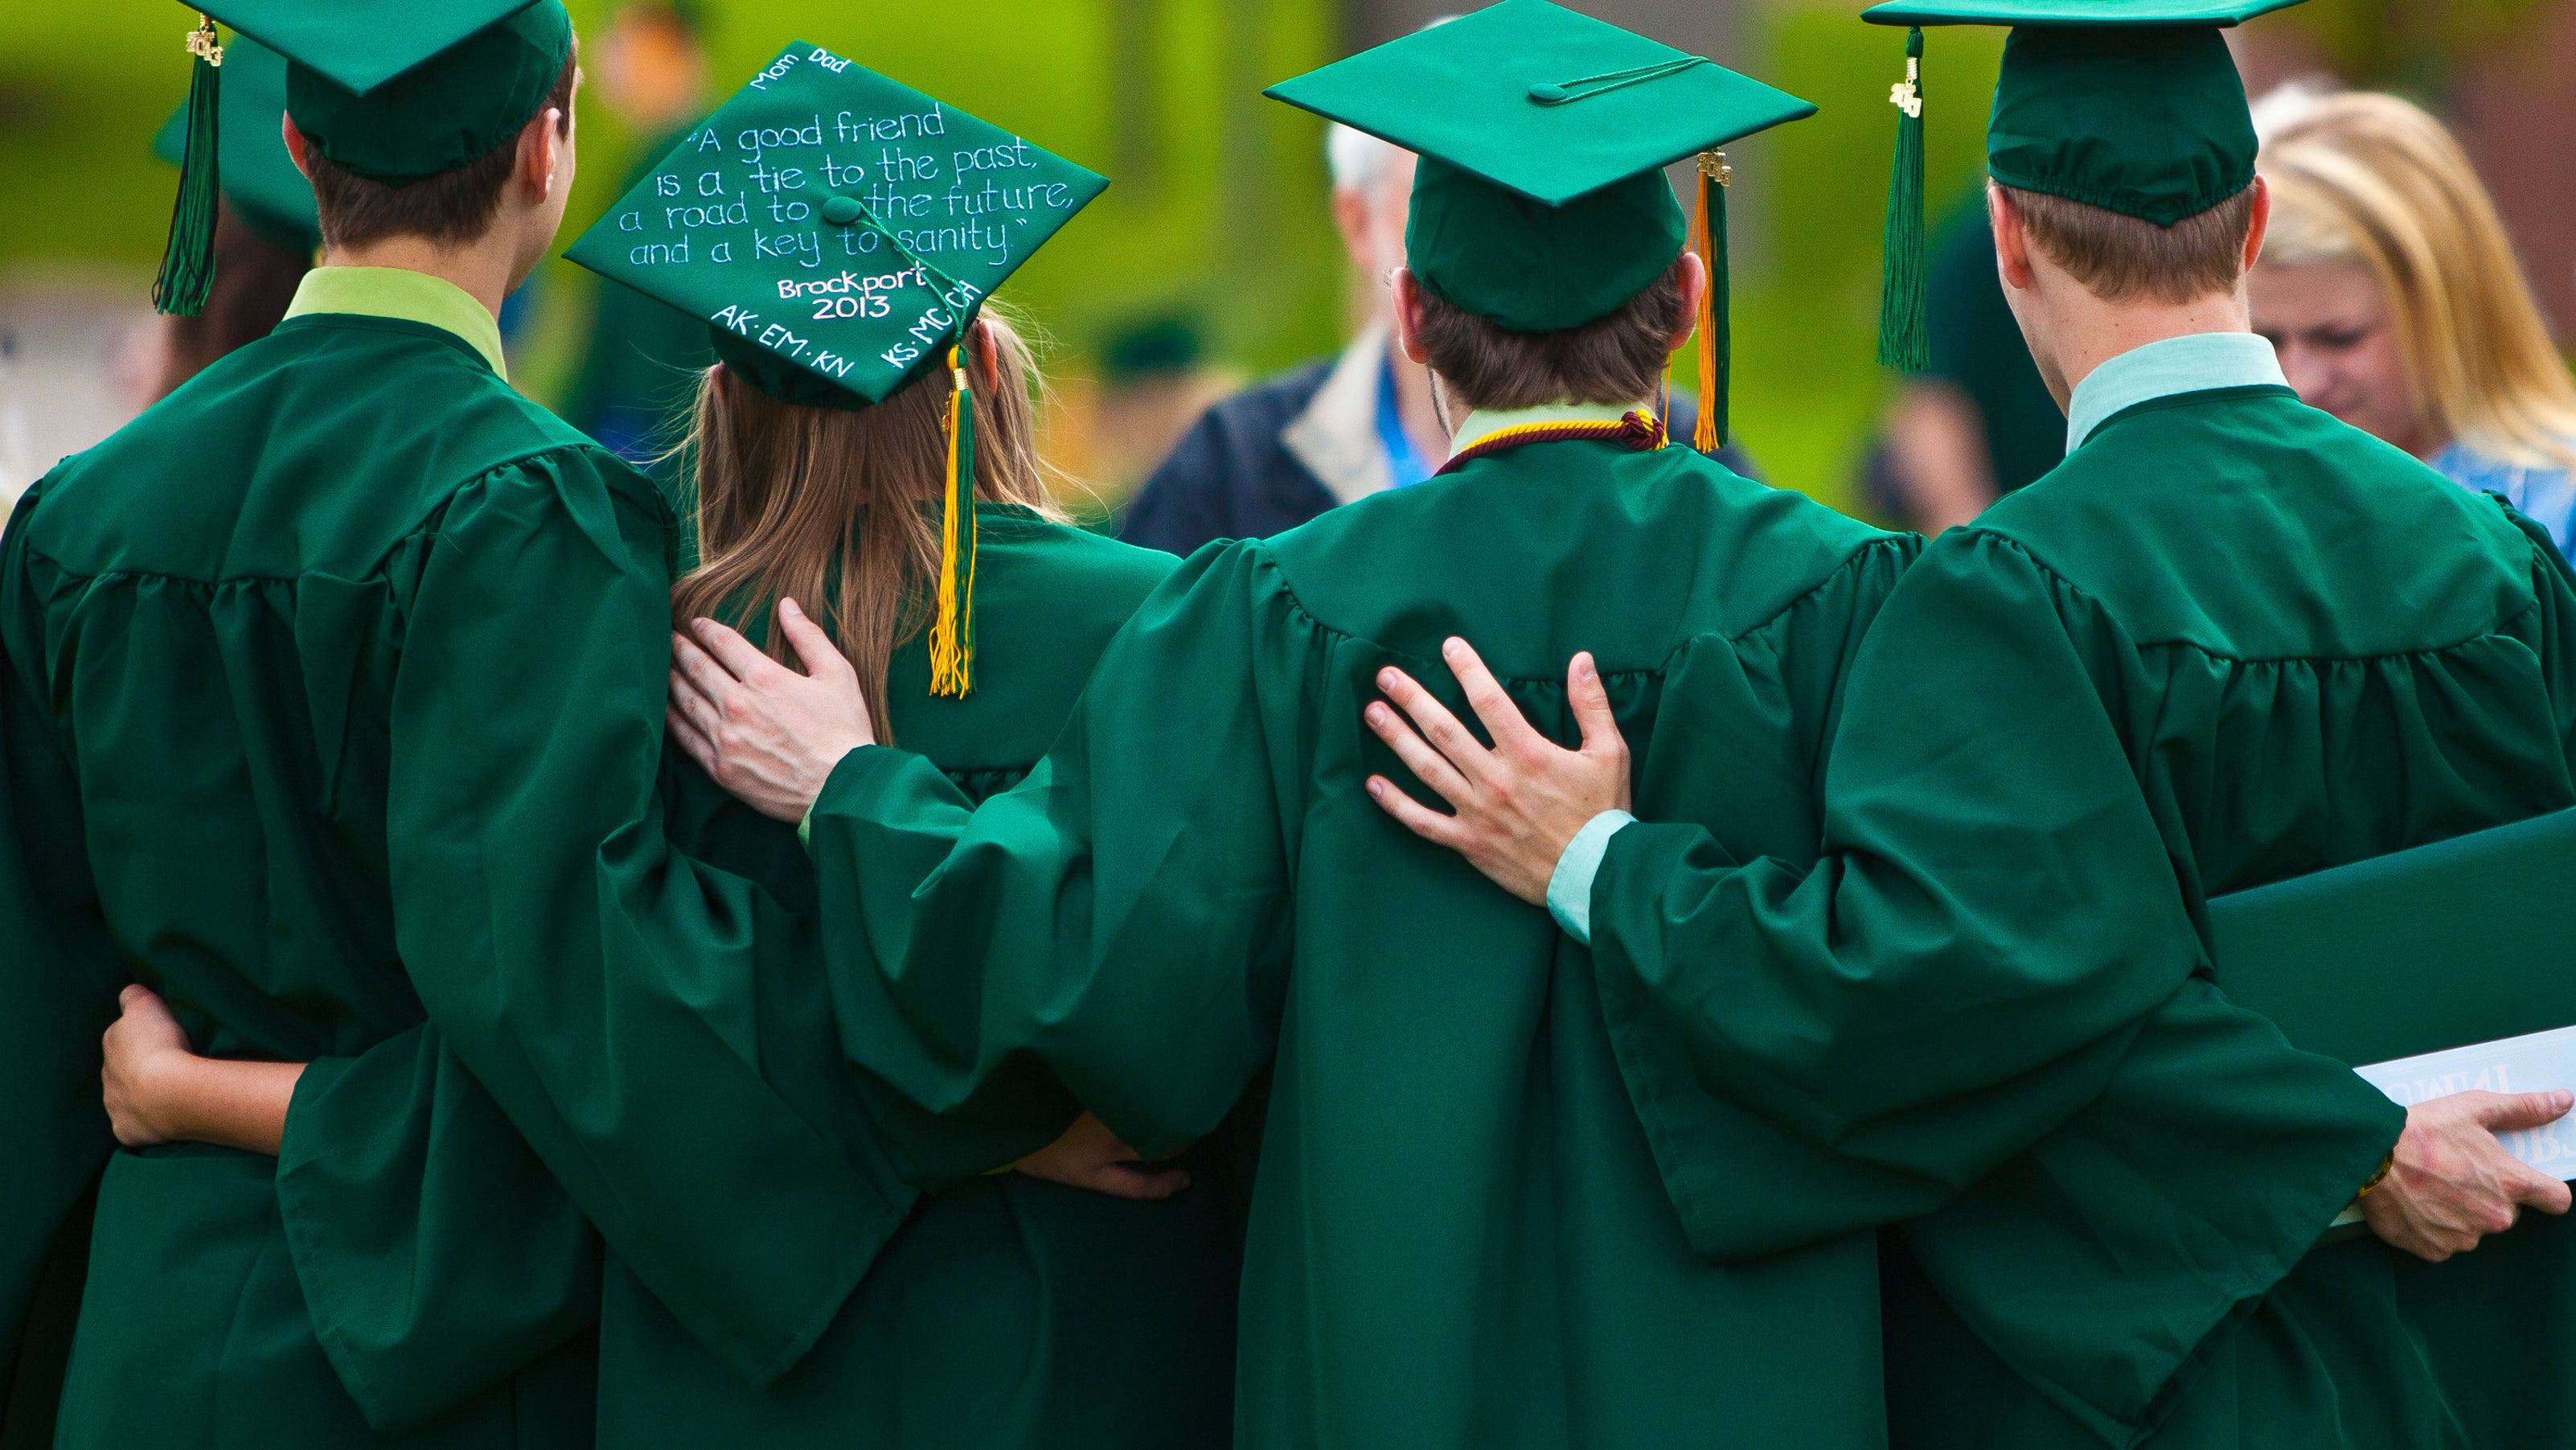 student debt essay Student debt is completely out of control, right the more than $1 trillion in outstanding college loans is front-page news and is pretty much the only educational issue the presidential candidates are talking about.